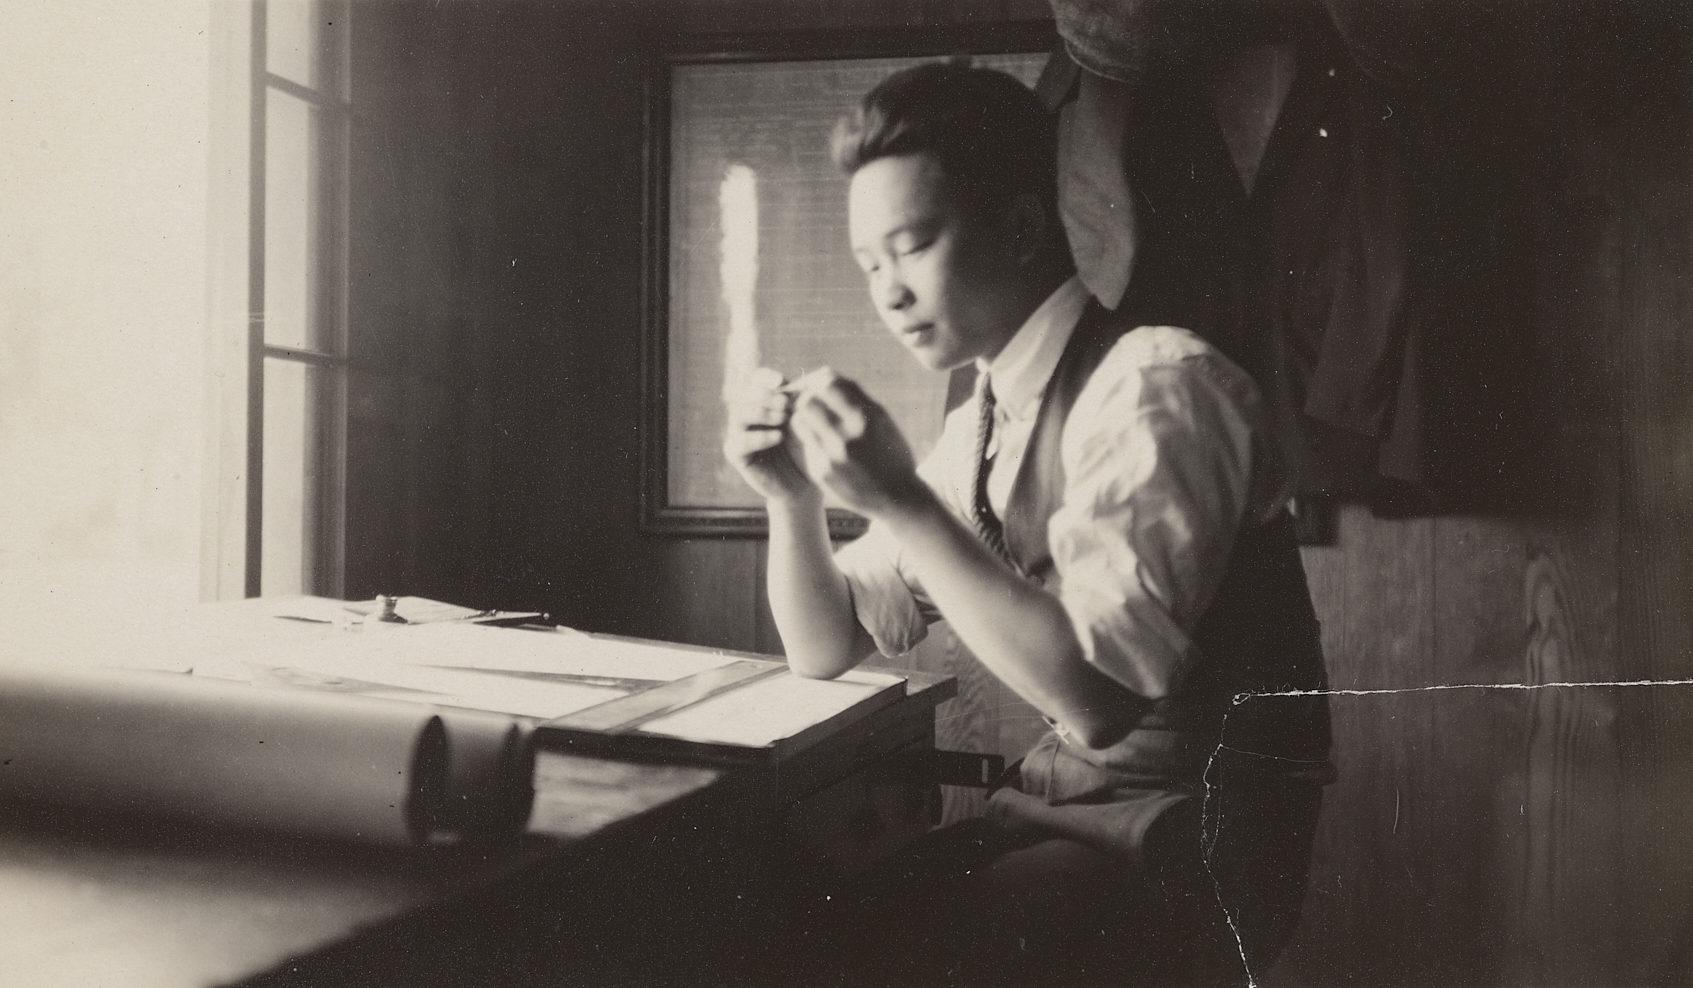 Peter SooHoo Sr. working at a drafting table (1920s)